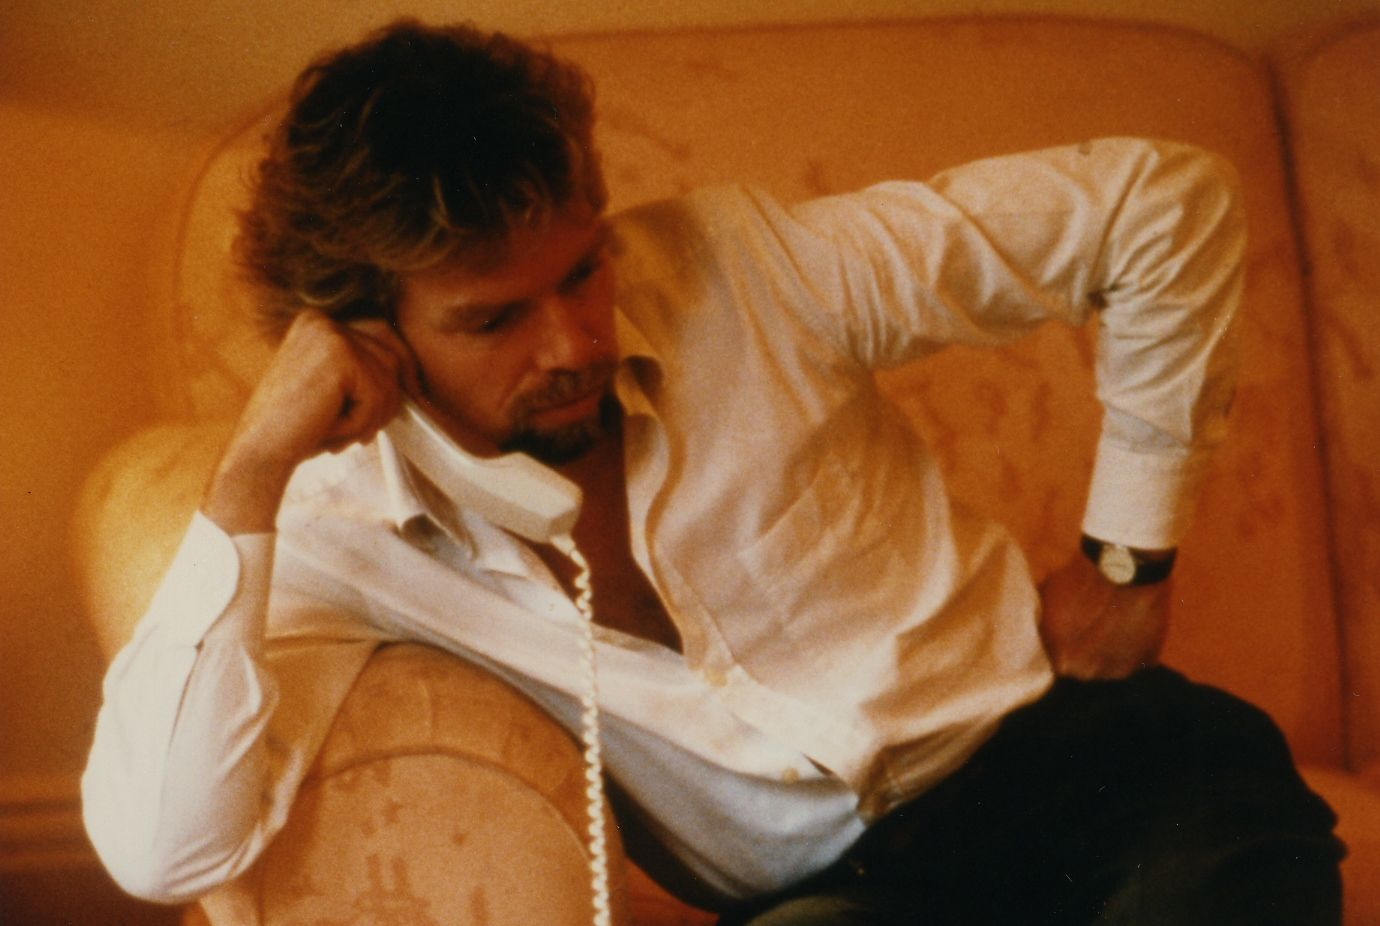 richard branson on the phone